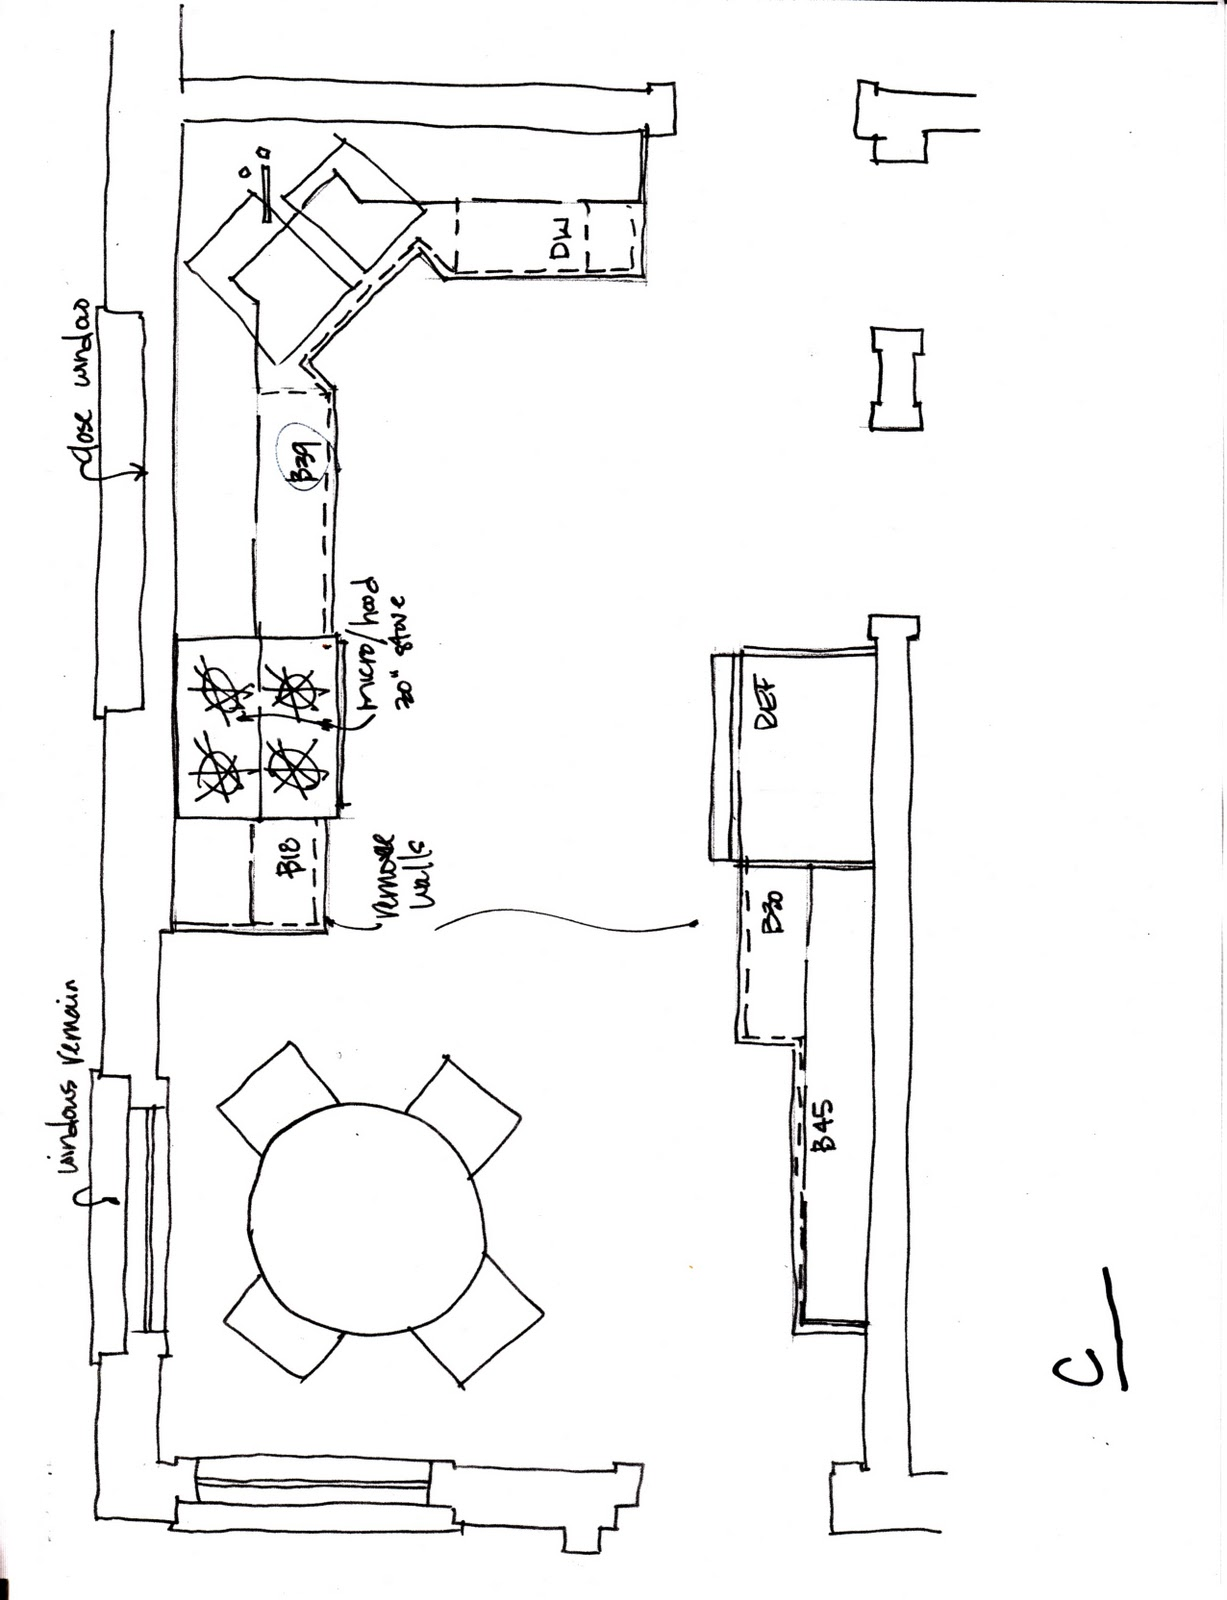 Small kitchen layouts plans afreakatheart for Small kitchen layouts